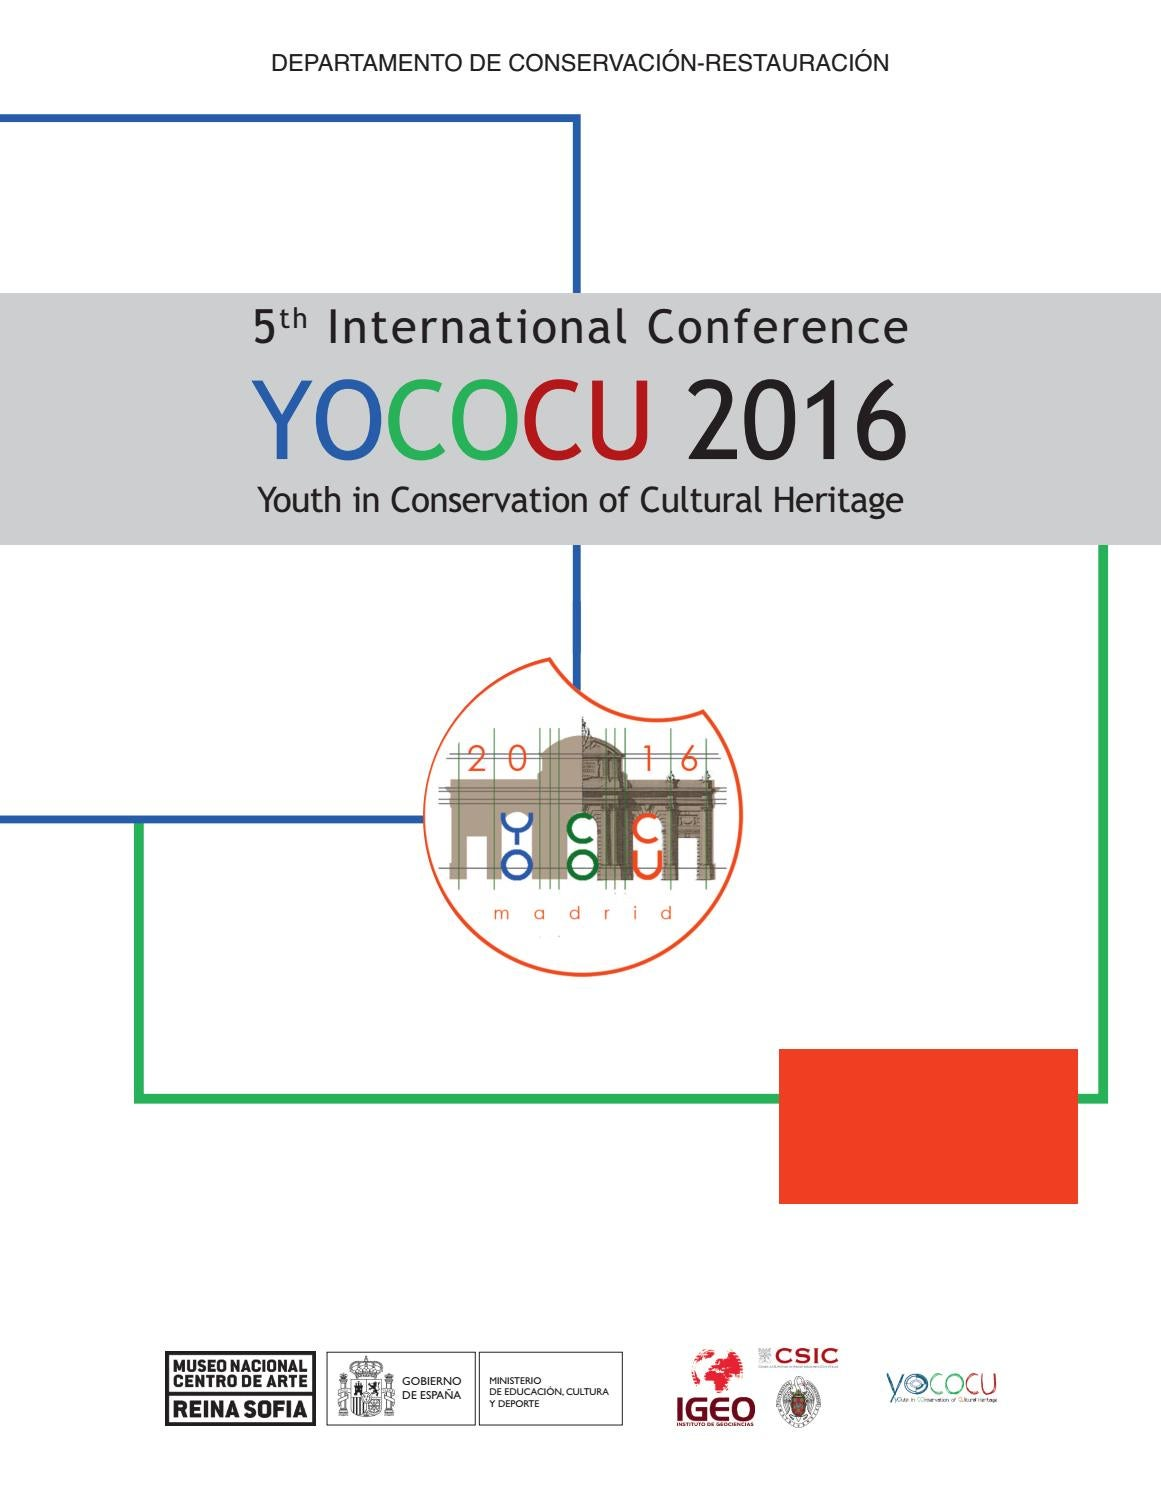 hight resolution of 5th international conference yococu 2016 youth in conservation of cultural heritage by museo reina sof a issuu